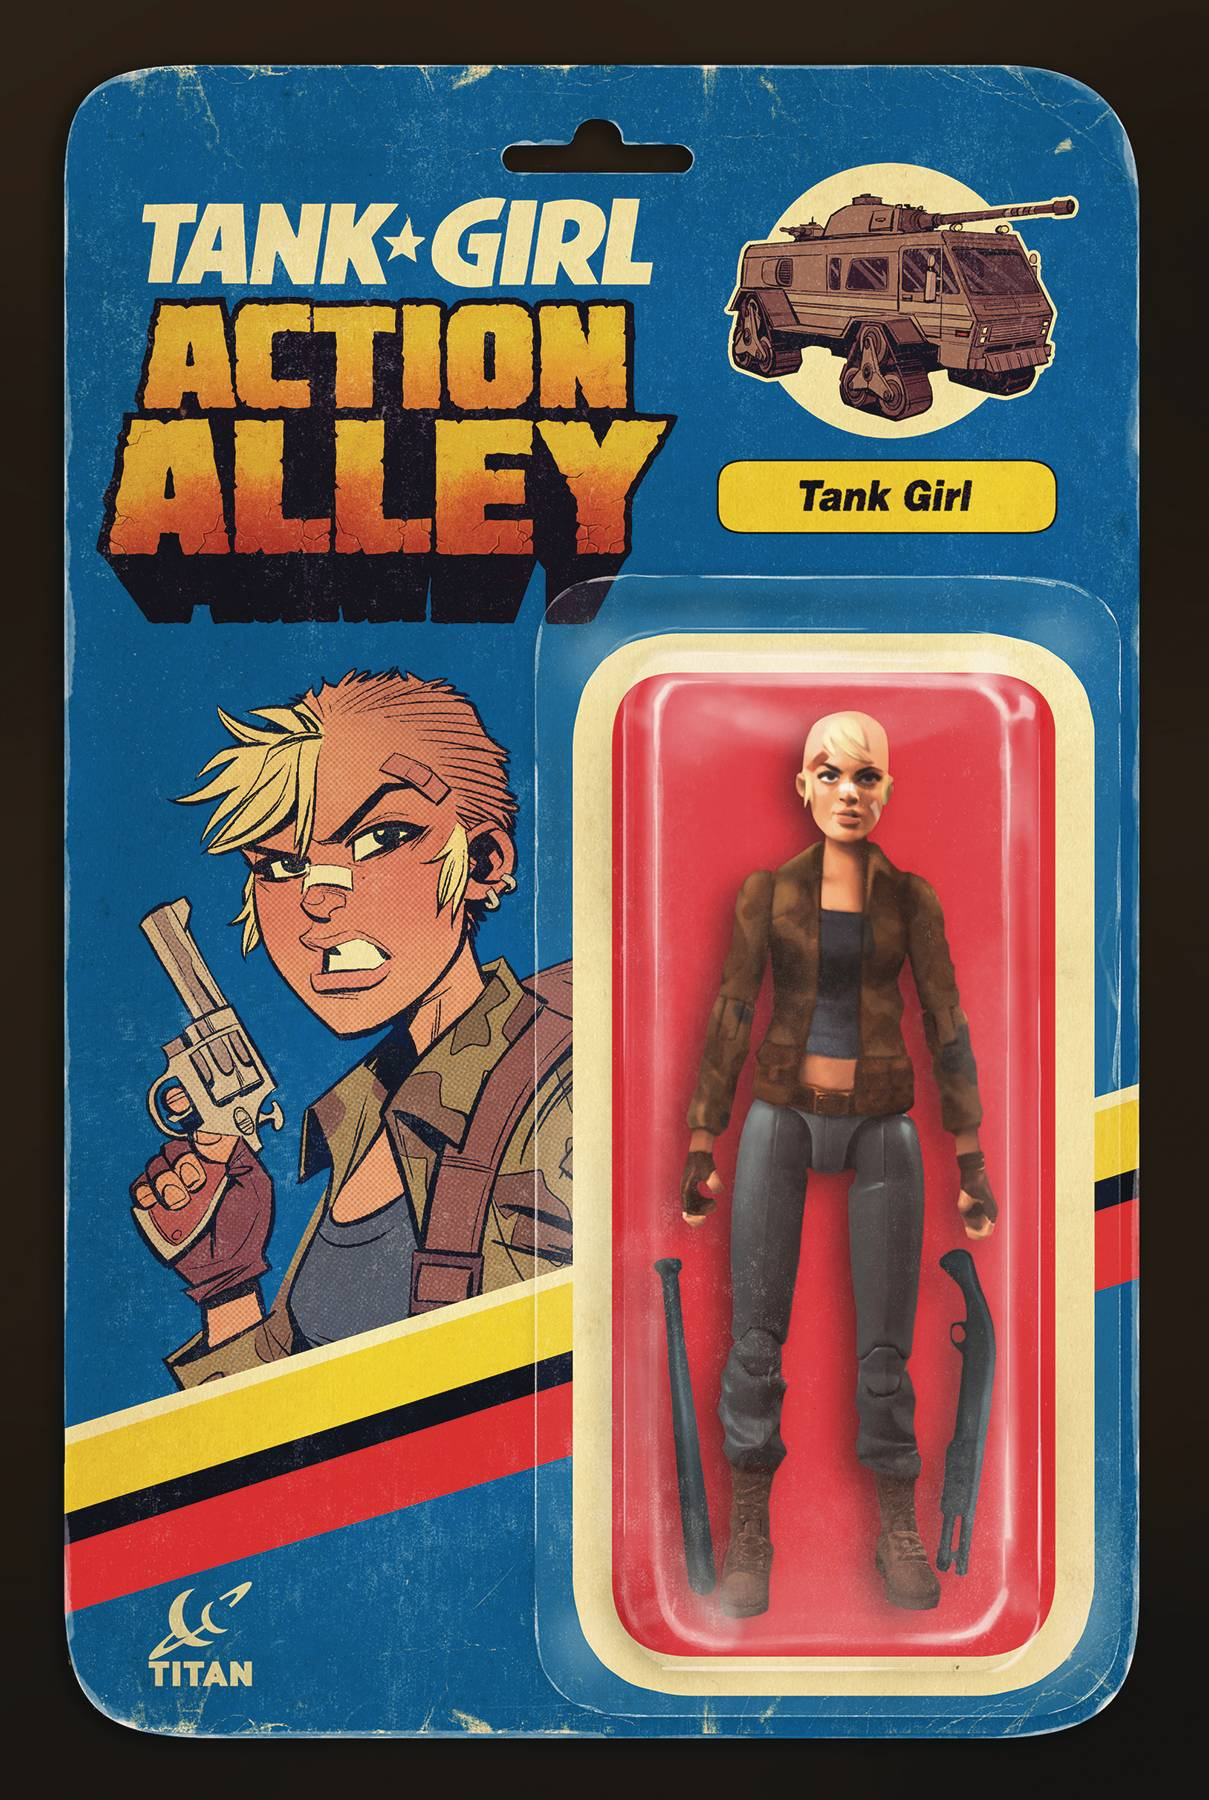 TANK GIRL ACTION ALLEY 1 CVR B ACTION FIGURE.jpg